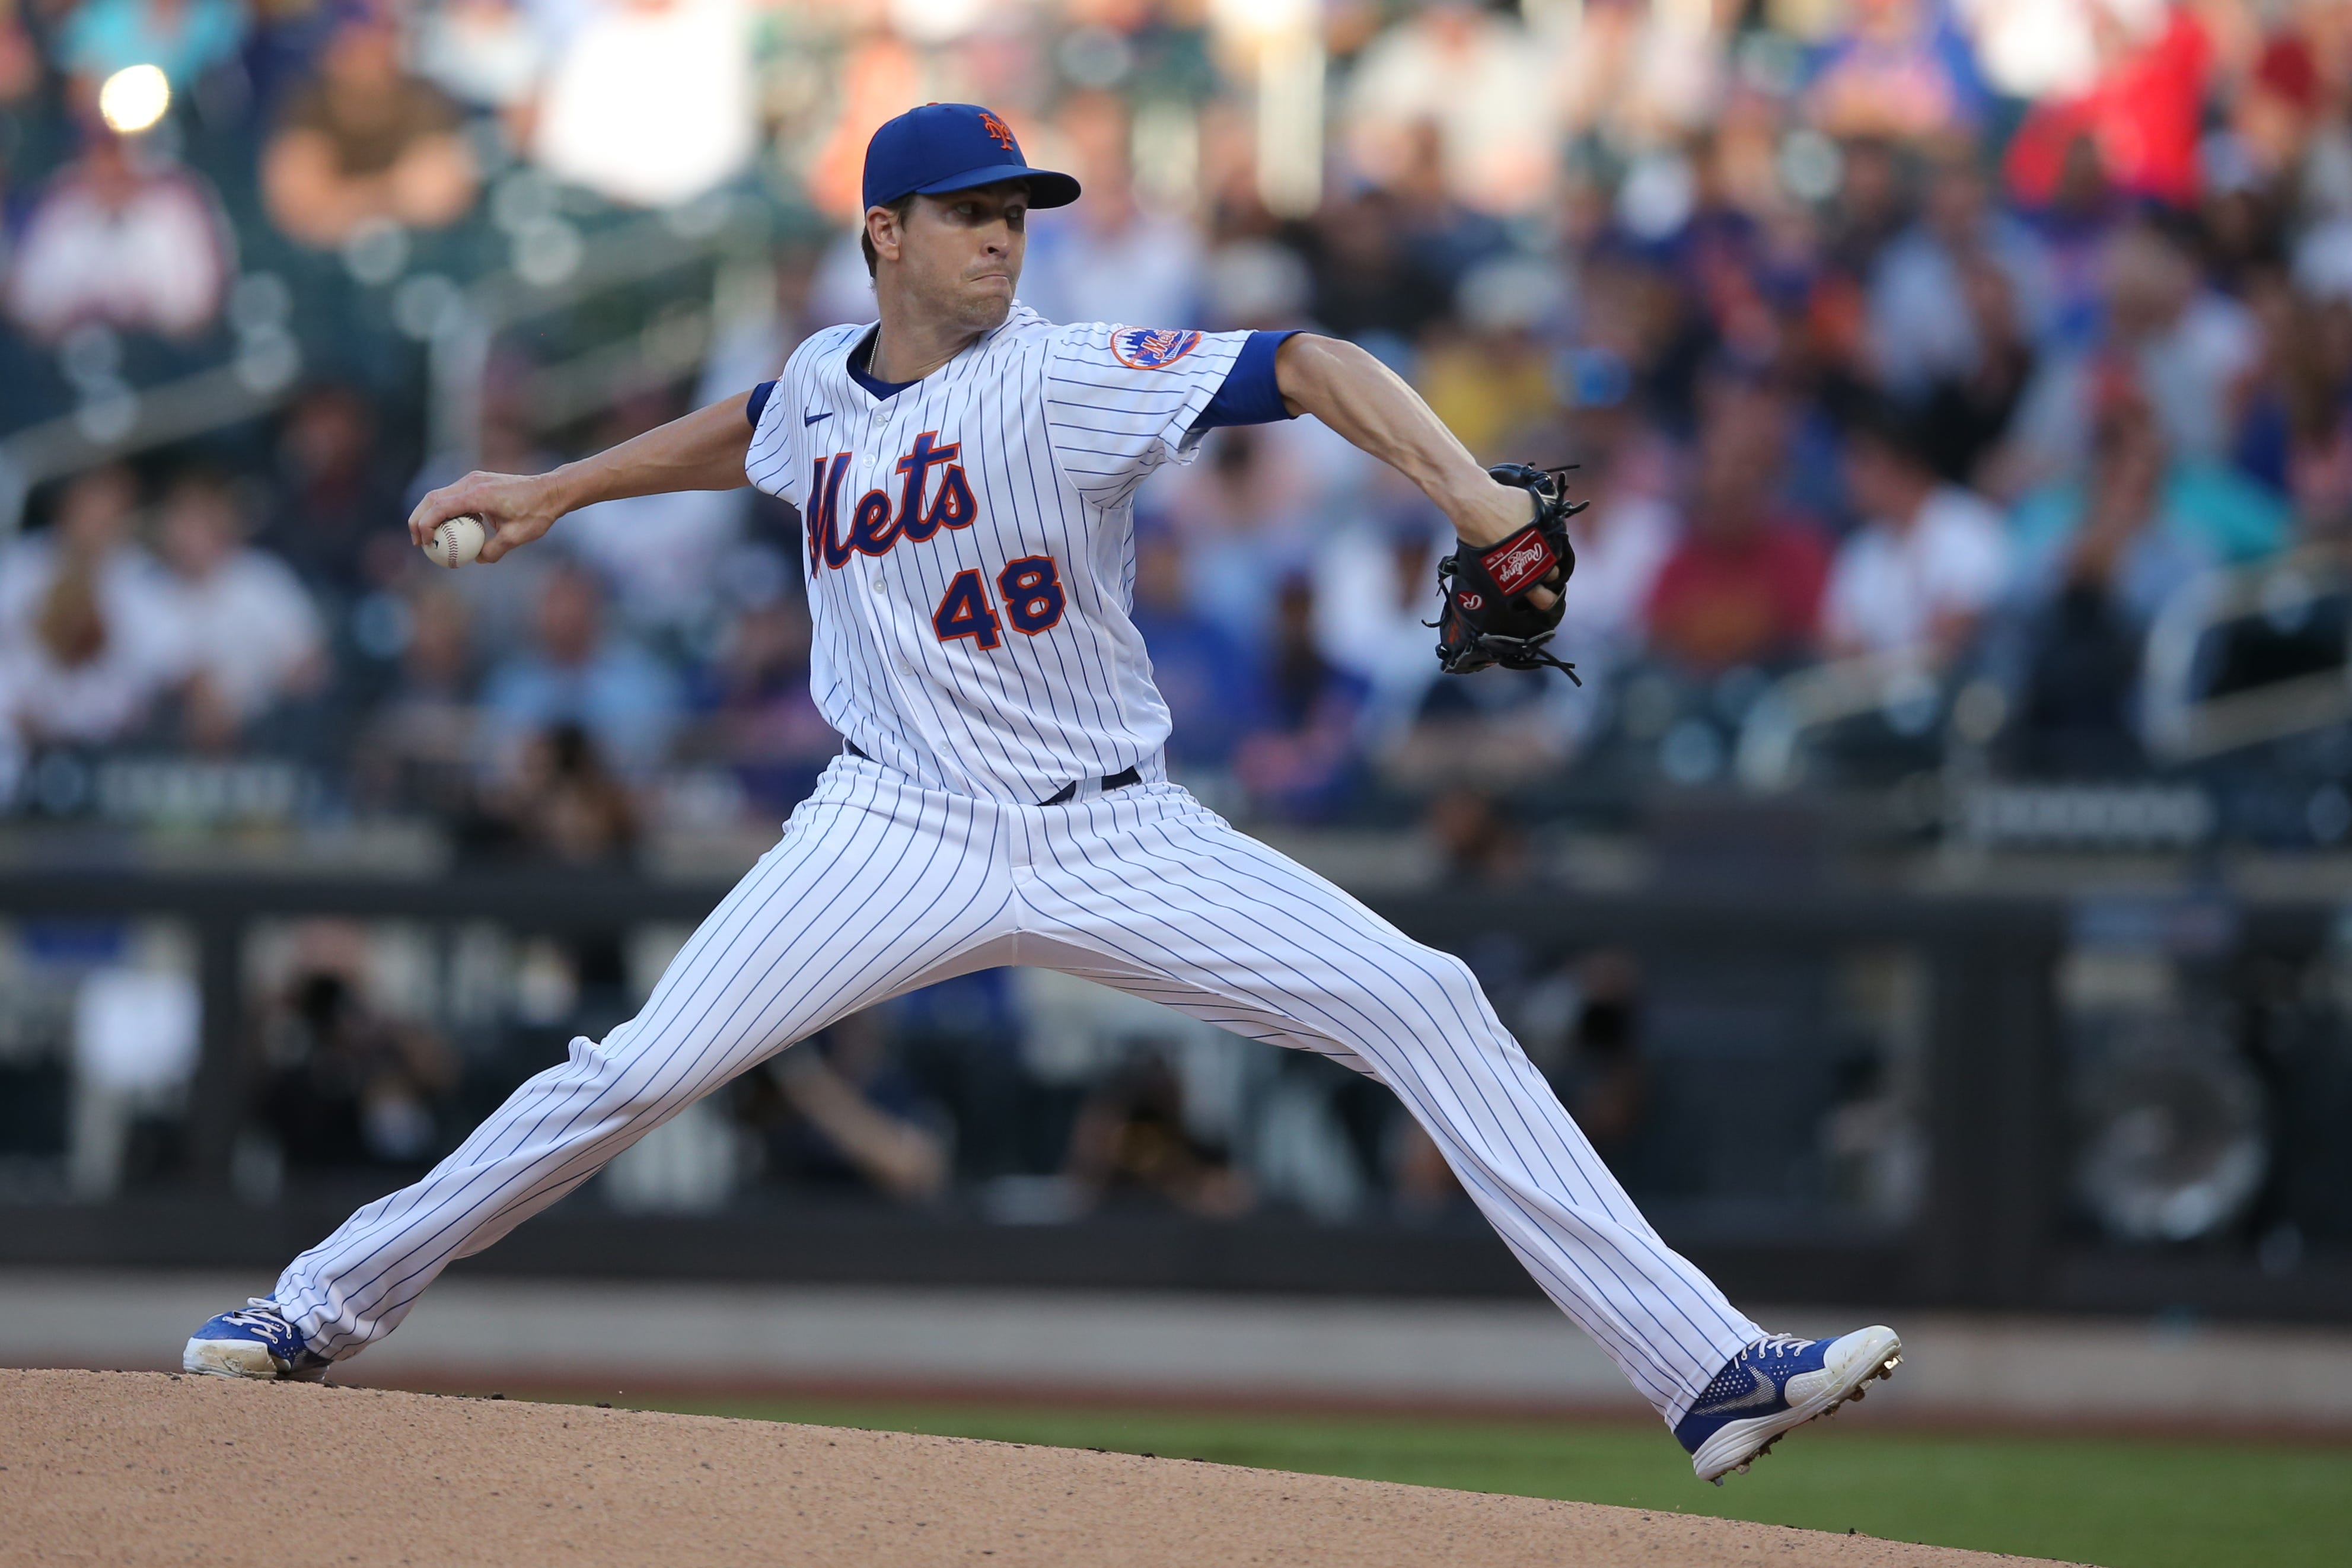 'This is getting old:' Mets ace Jacob deGrom exits start after 3 innings due to right shoulder soreness